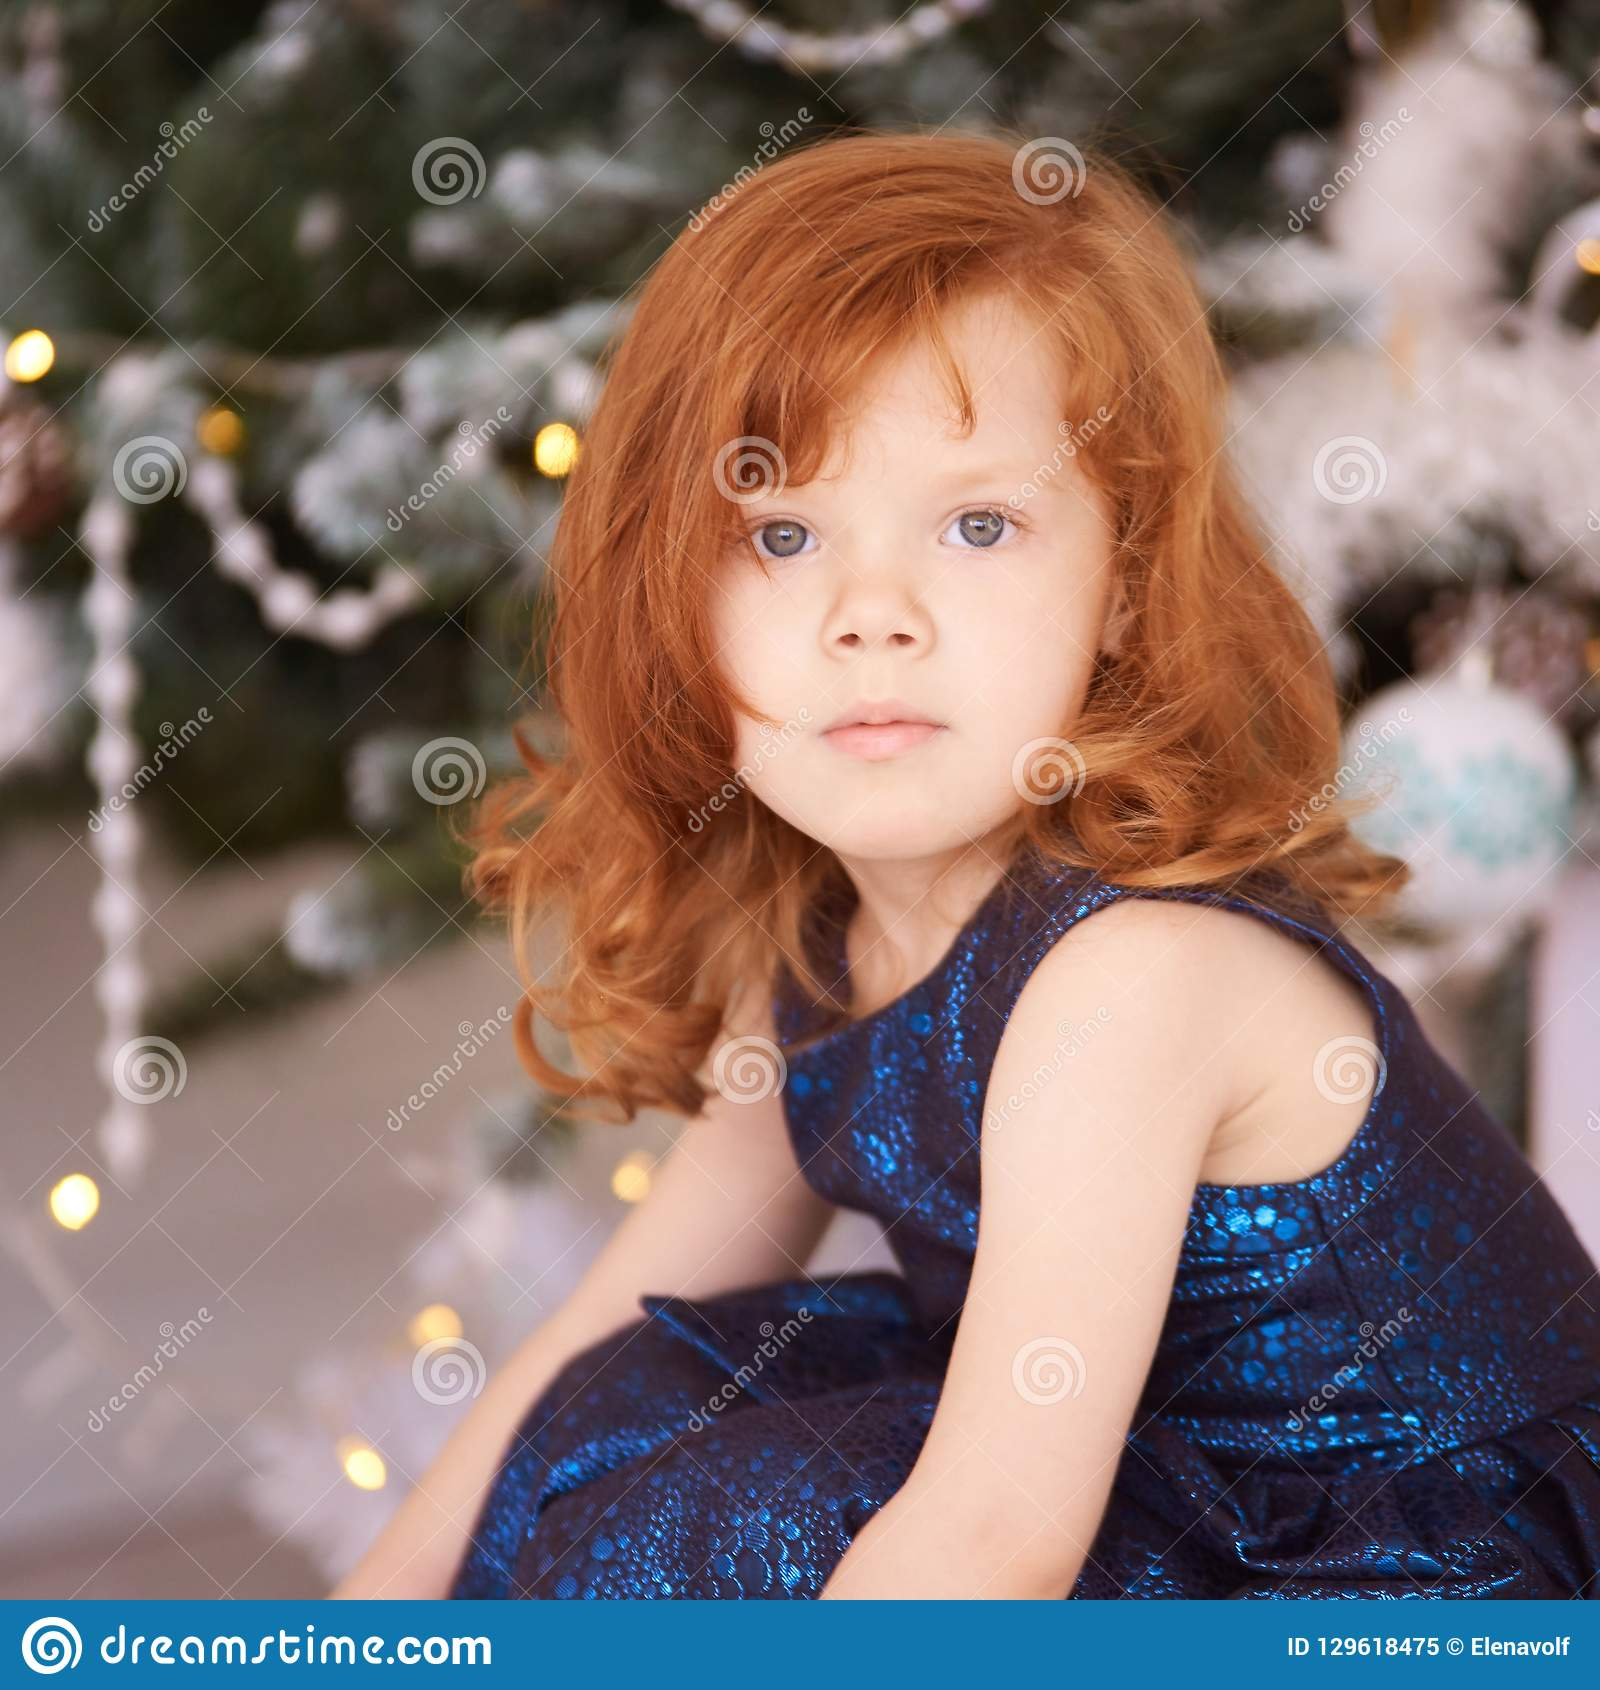 Portrait of little girl. New Year xmas child. Christmas eve holiday. interior. interior. Horizontal